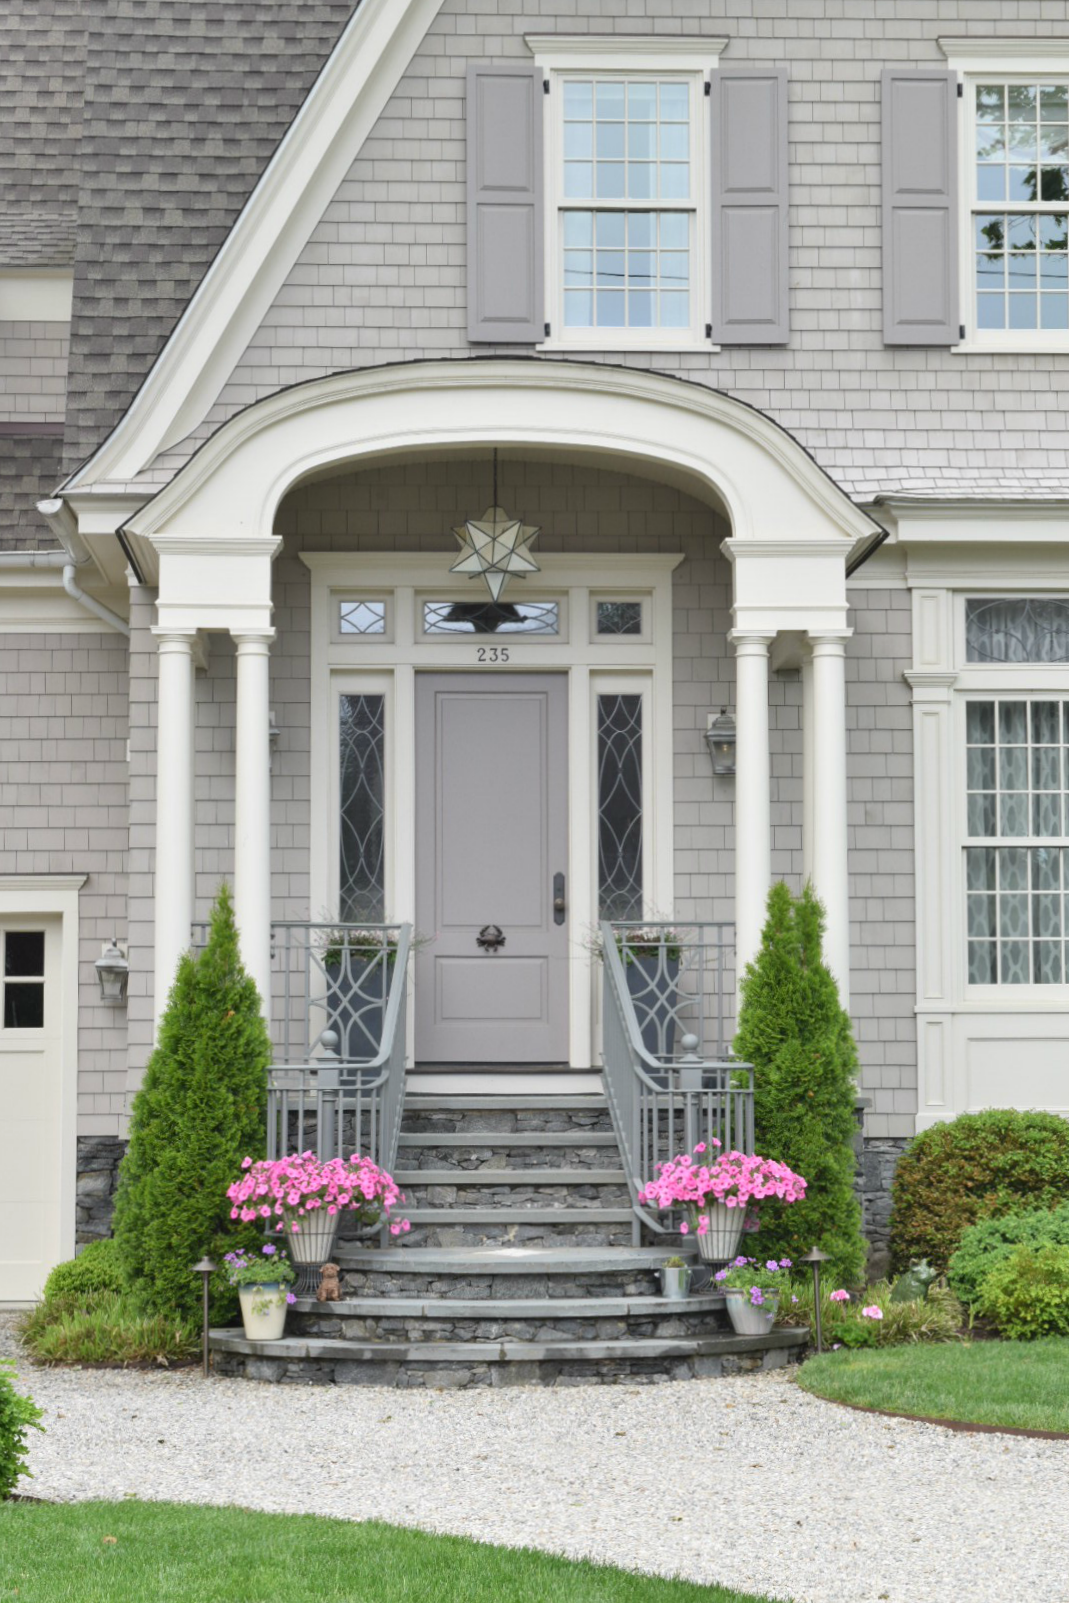 New england homes exterior paint color ideas nesting with grace - Home exterior painting ...